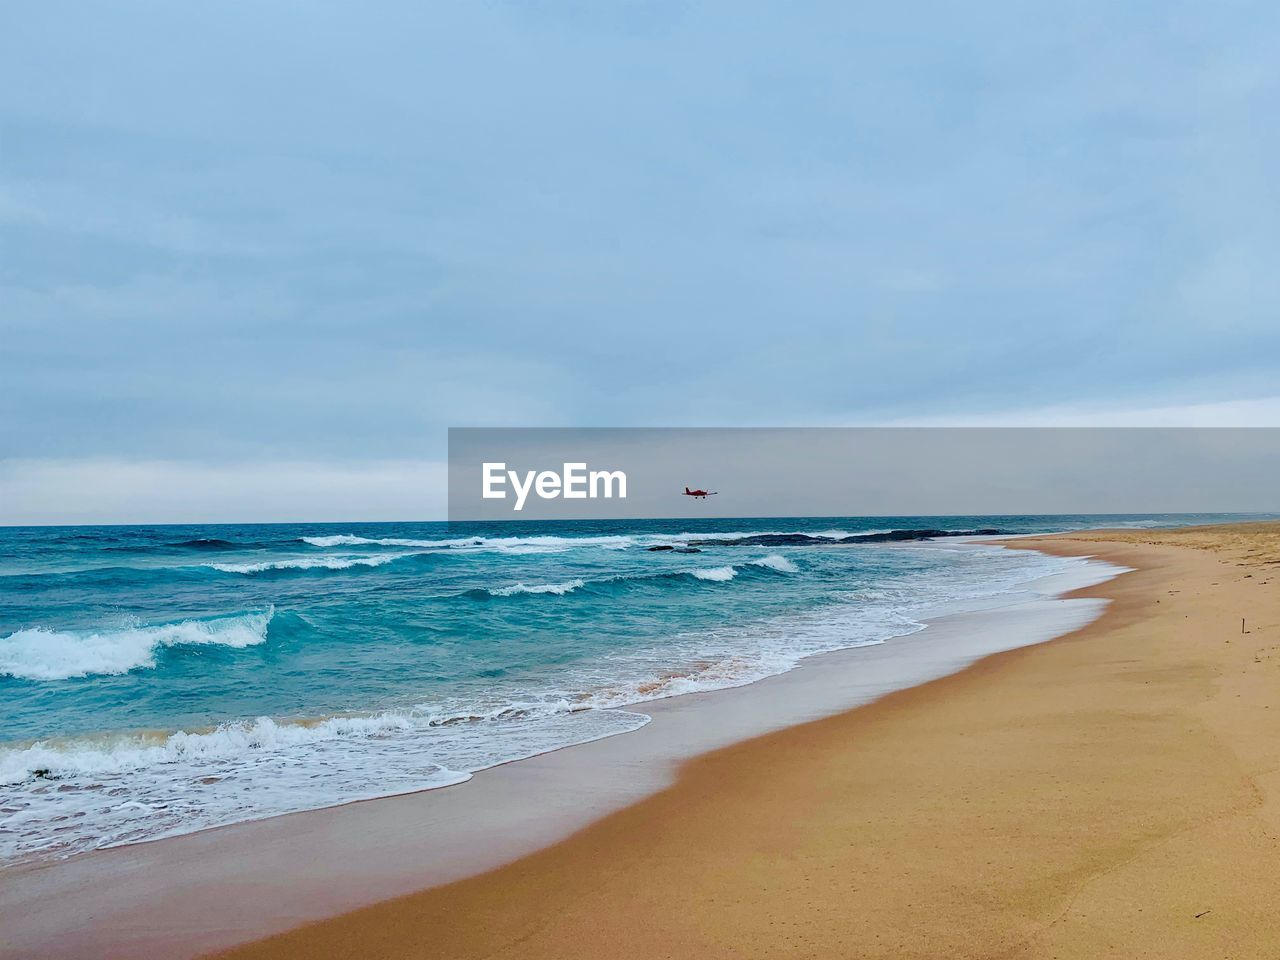 sea, beach, water, land, sky, scenics - nature, horizon over water, horizon, beauty in nature, motion, wave, cloud - sky, tranquility, tranquil scene, nature, day, aquatic sport, sand, idyllic, no people, outdoors